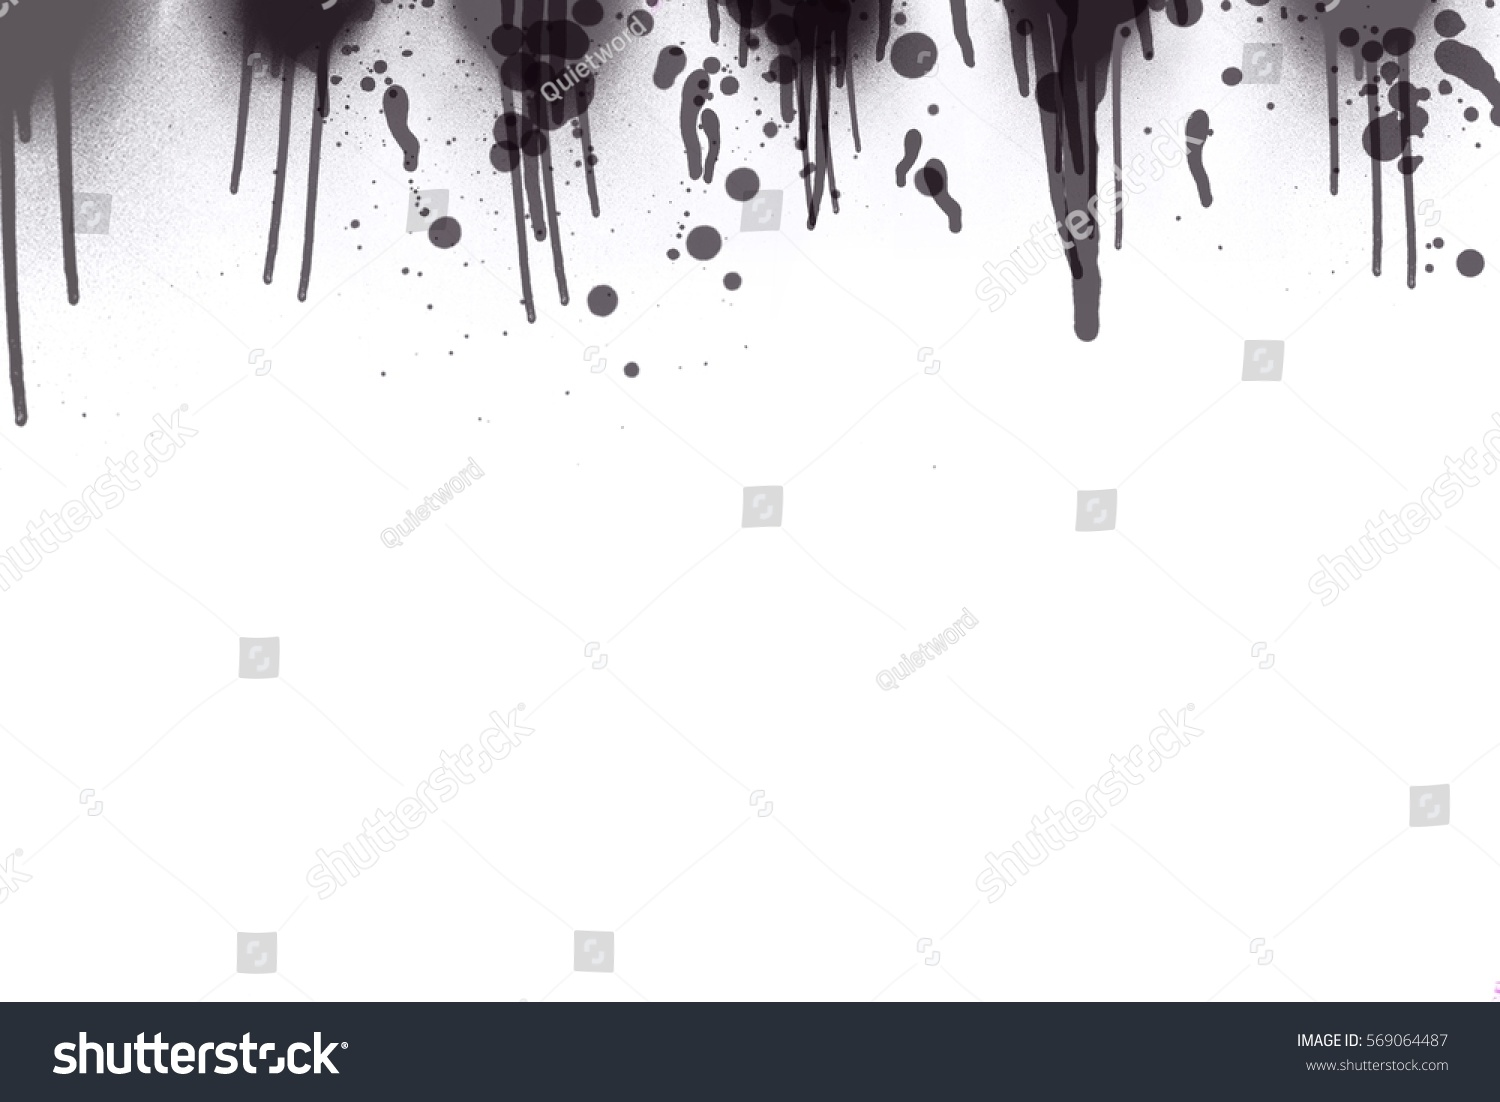 Illustration of water color splash background in black and white tone color